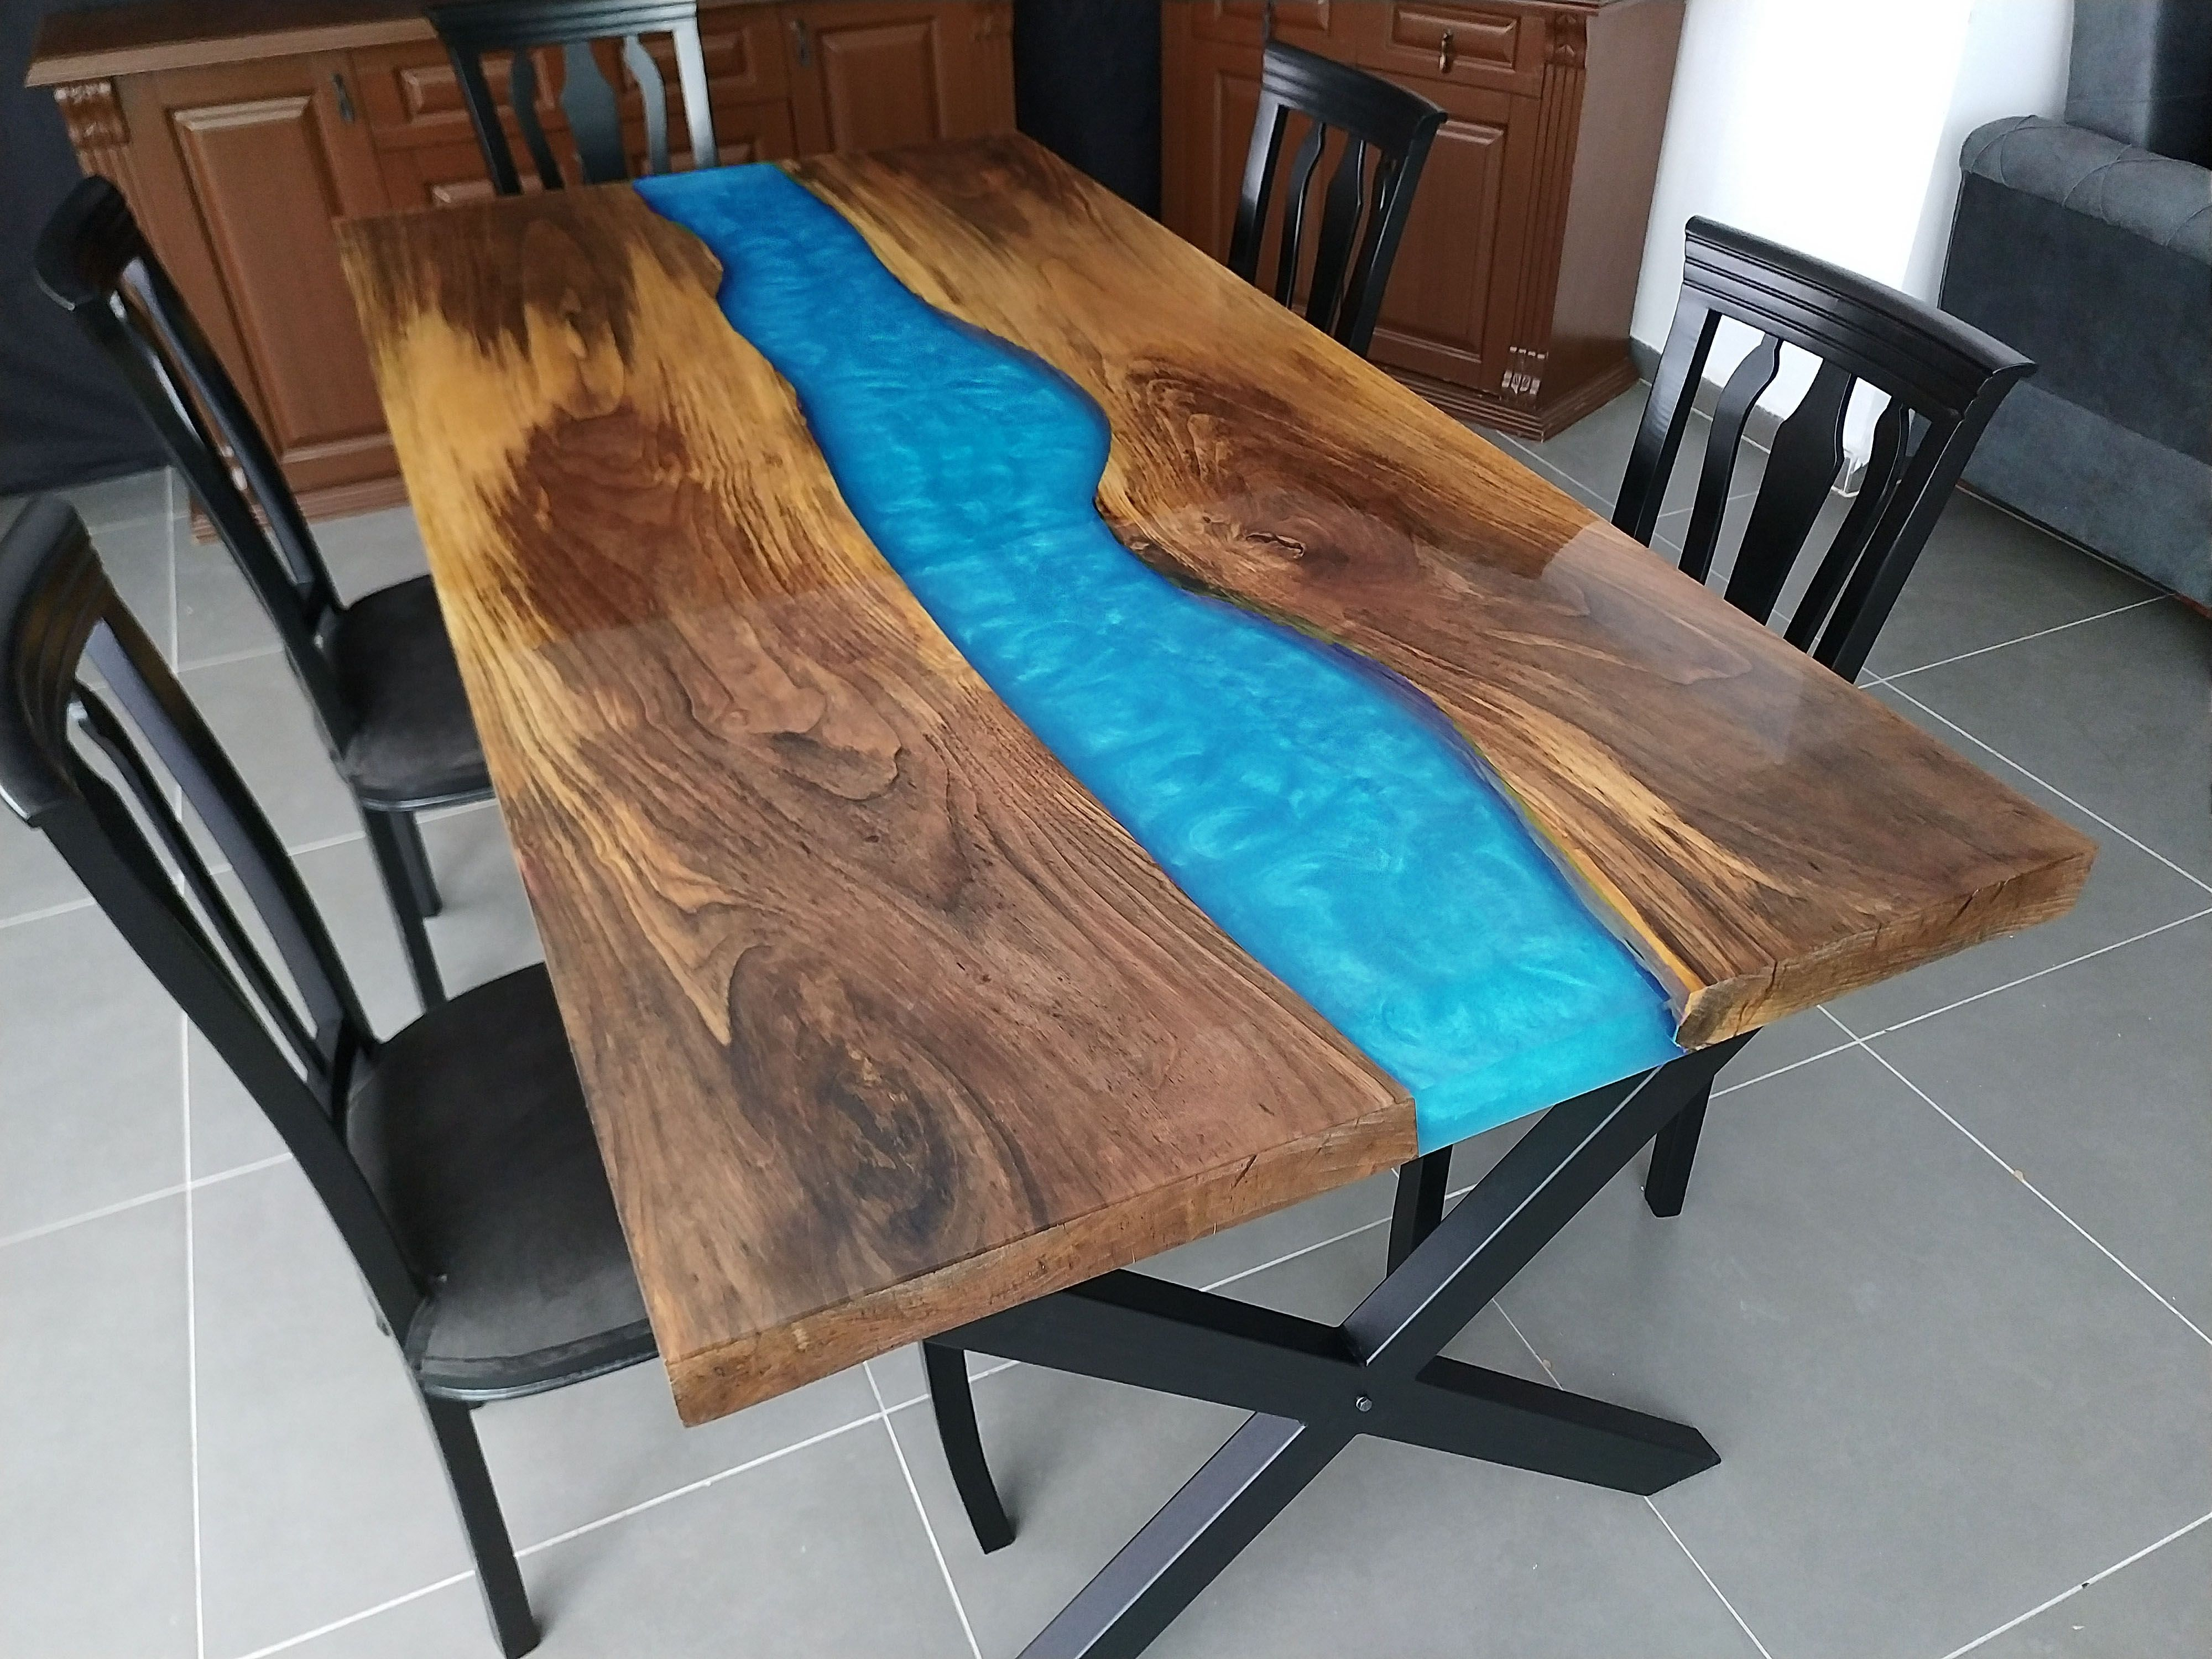 Epoxy table.  Magnificent epoxy resin table production and step by step production pictures and videos  #epoxytable #epoxyresintable #epoxyrivertable #epoxyrivertable #rivertable  #liveedge